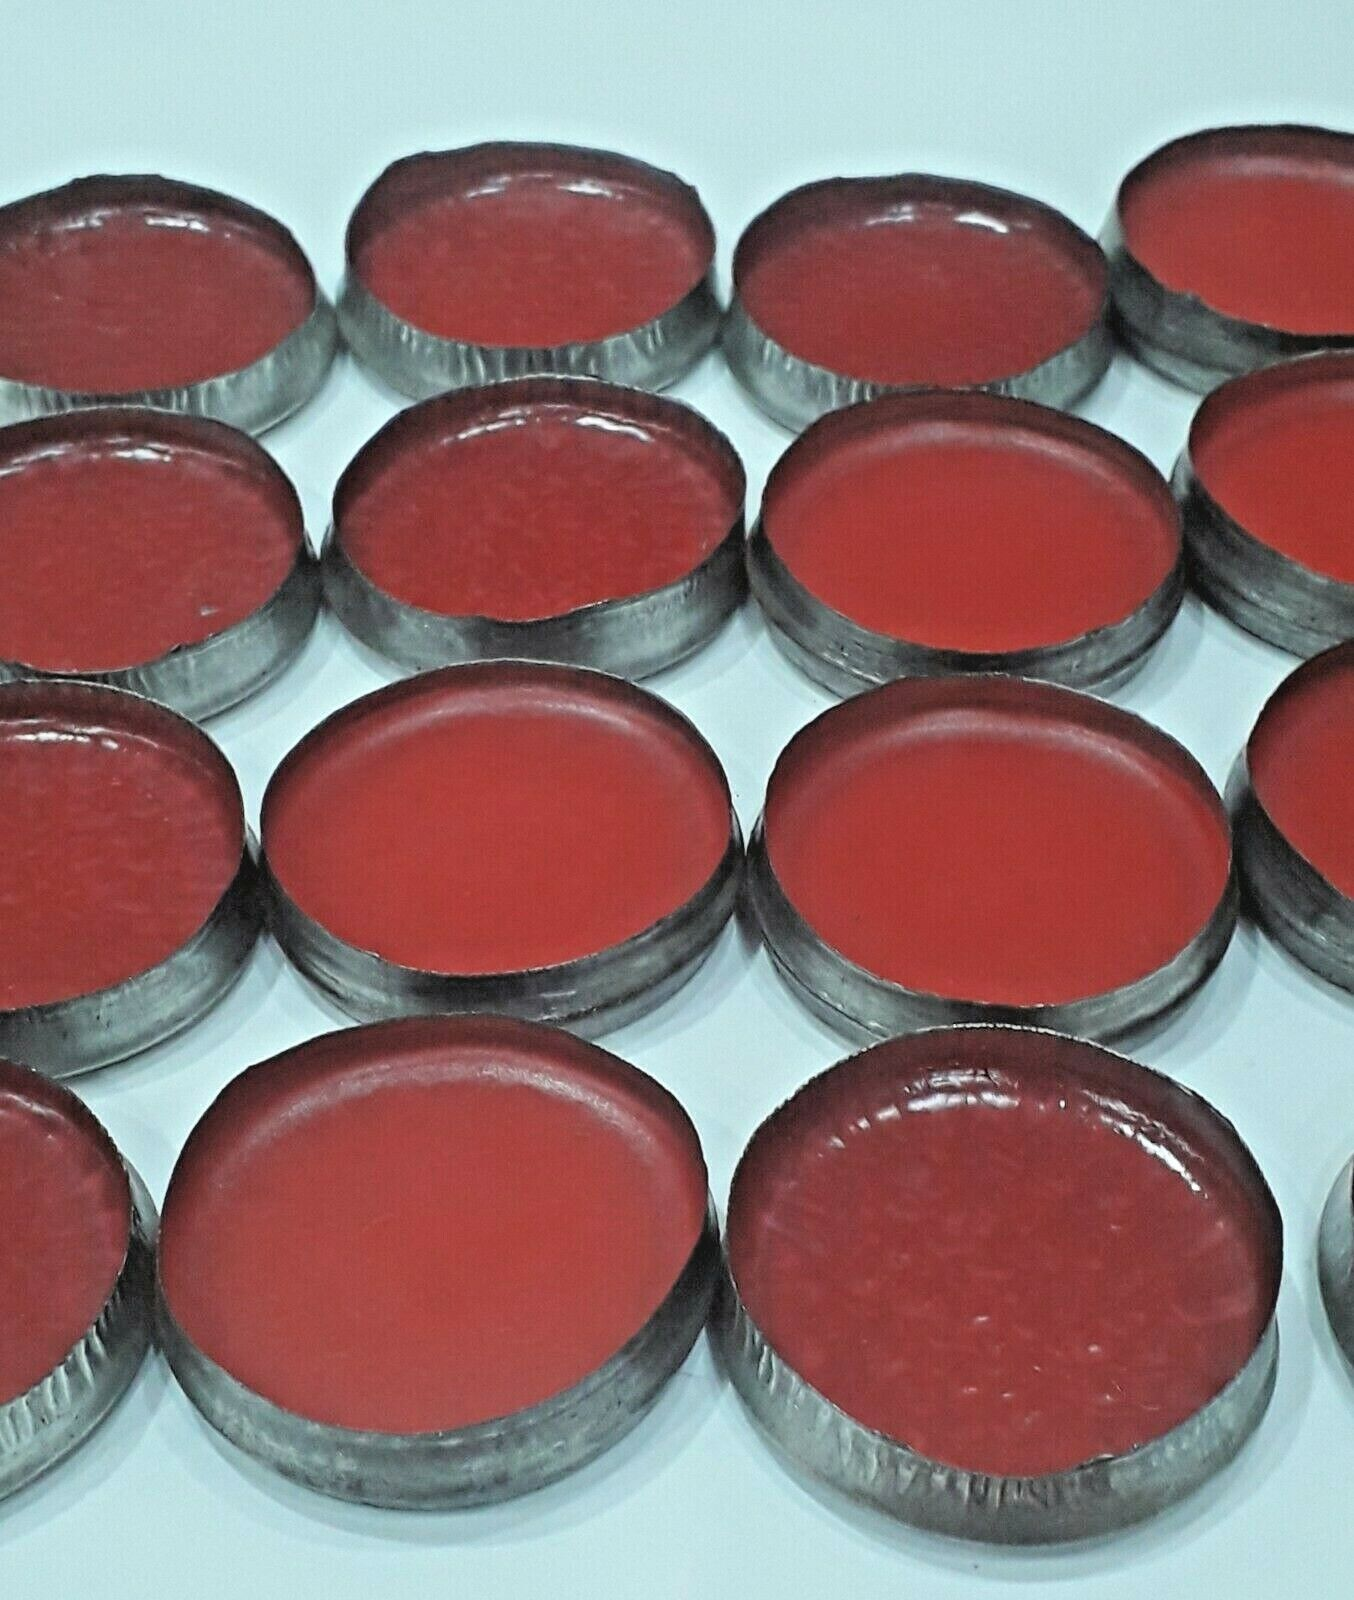 100% Morocco Natural Organic Oral/Genital Herpes Treatment Salve/Cream 1pcs